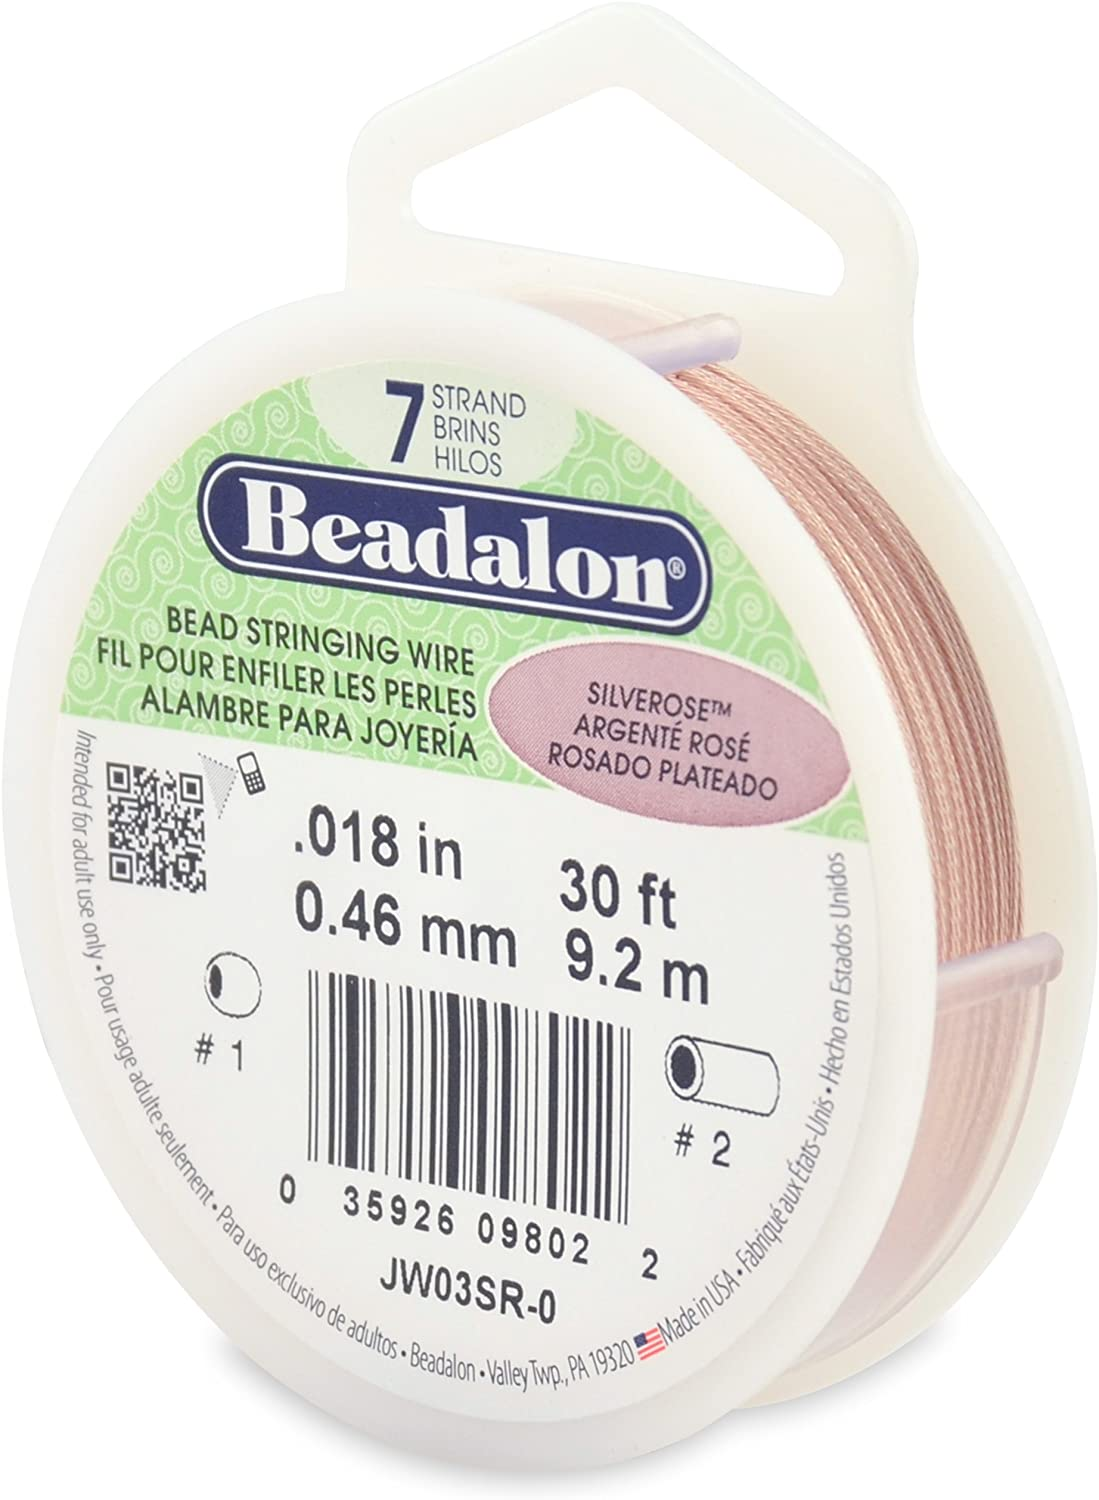 Beadalon 7-Strand Stainless Steel 0.018-Inch Bead Stringing Wire, 30-Feet, Silver Rose Color